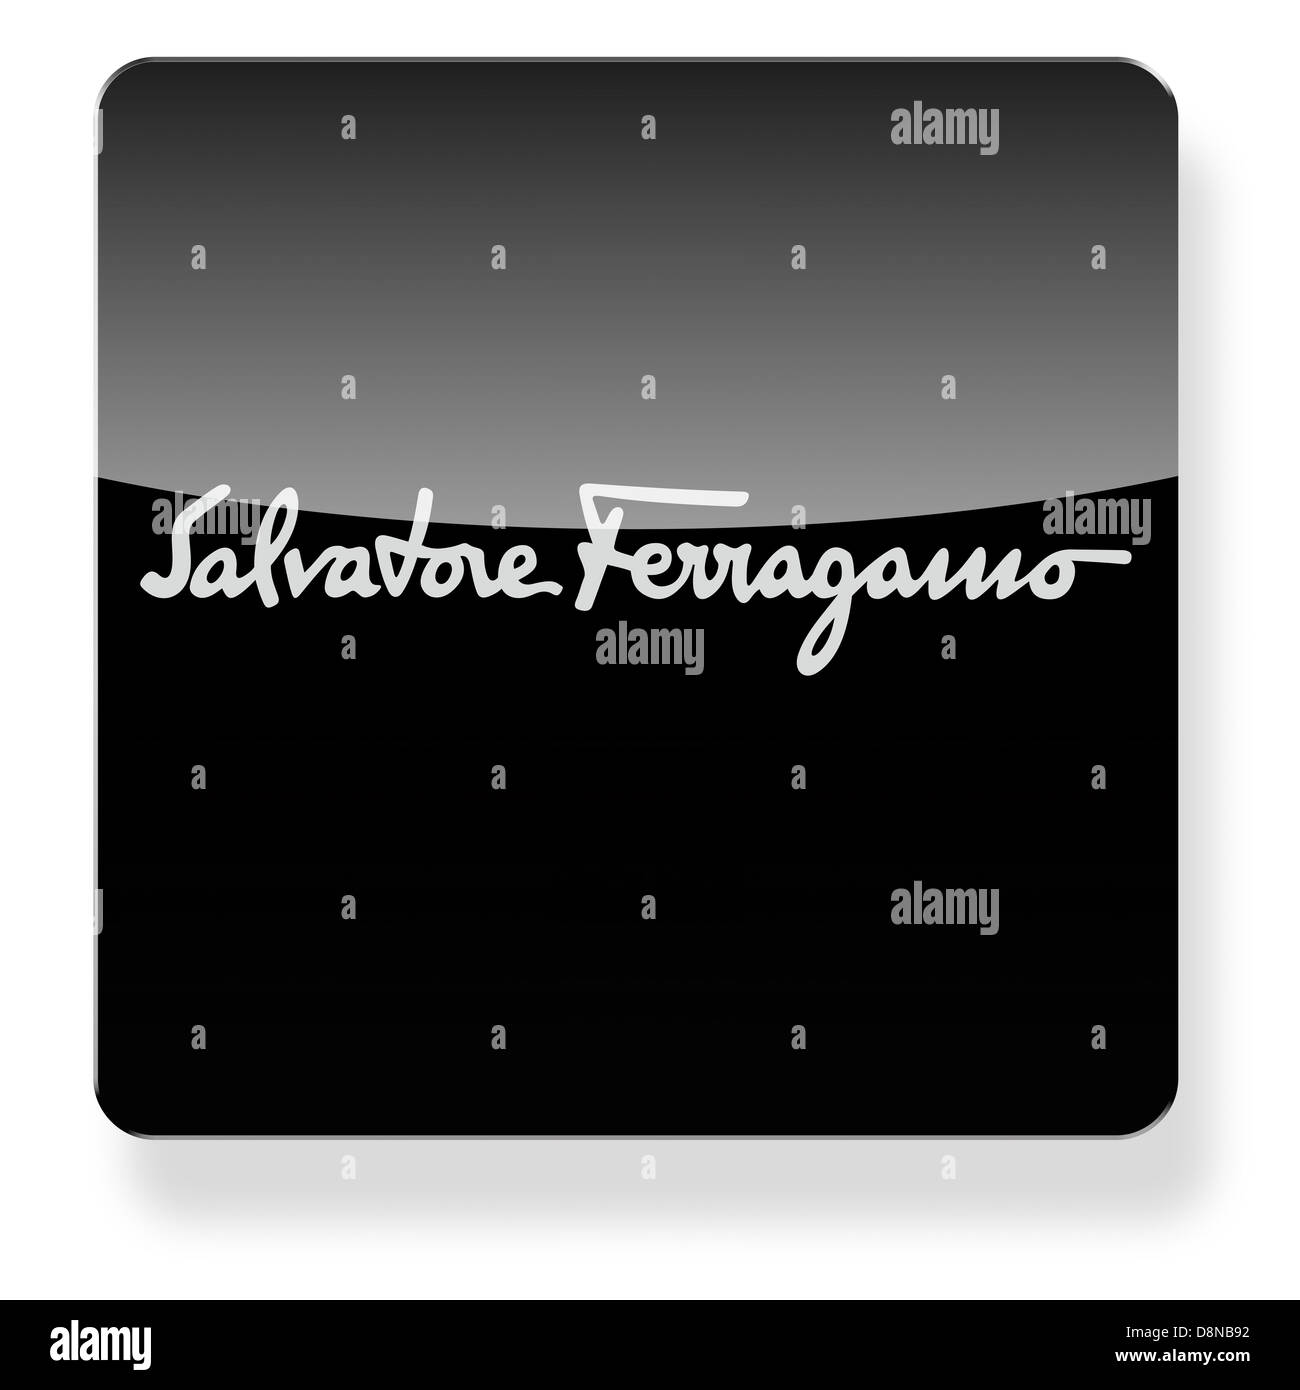 Salvatore Ferragamo logo as an app icon. Clipping path included. - Stock Image